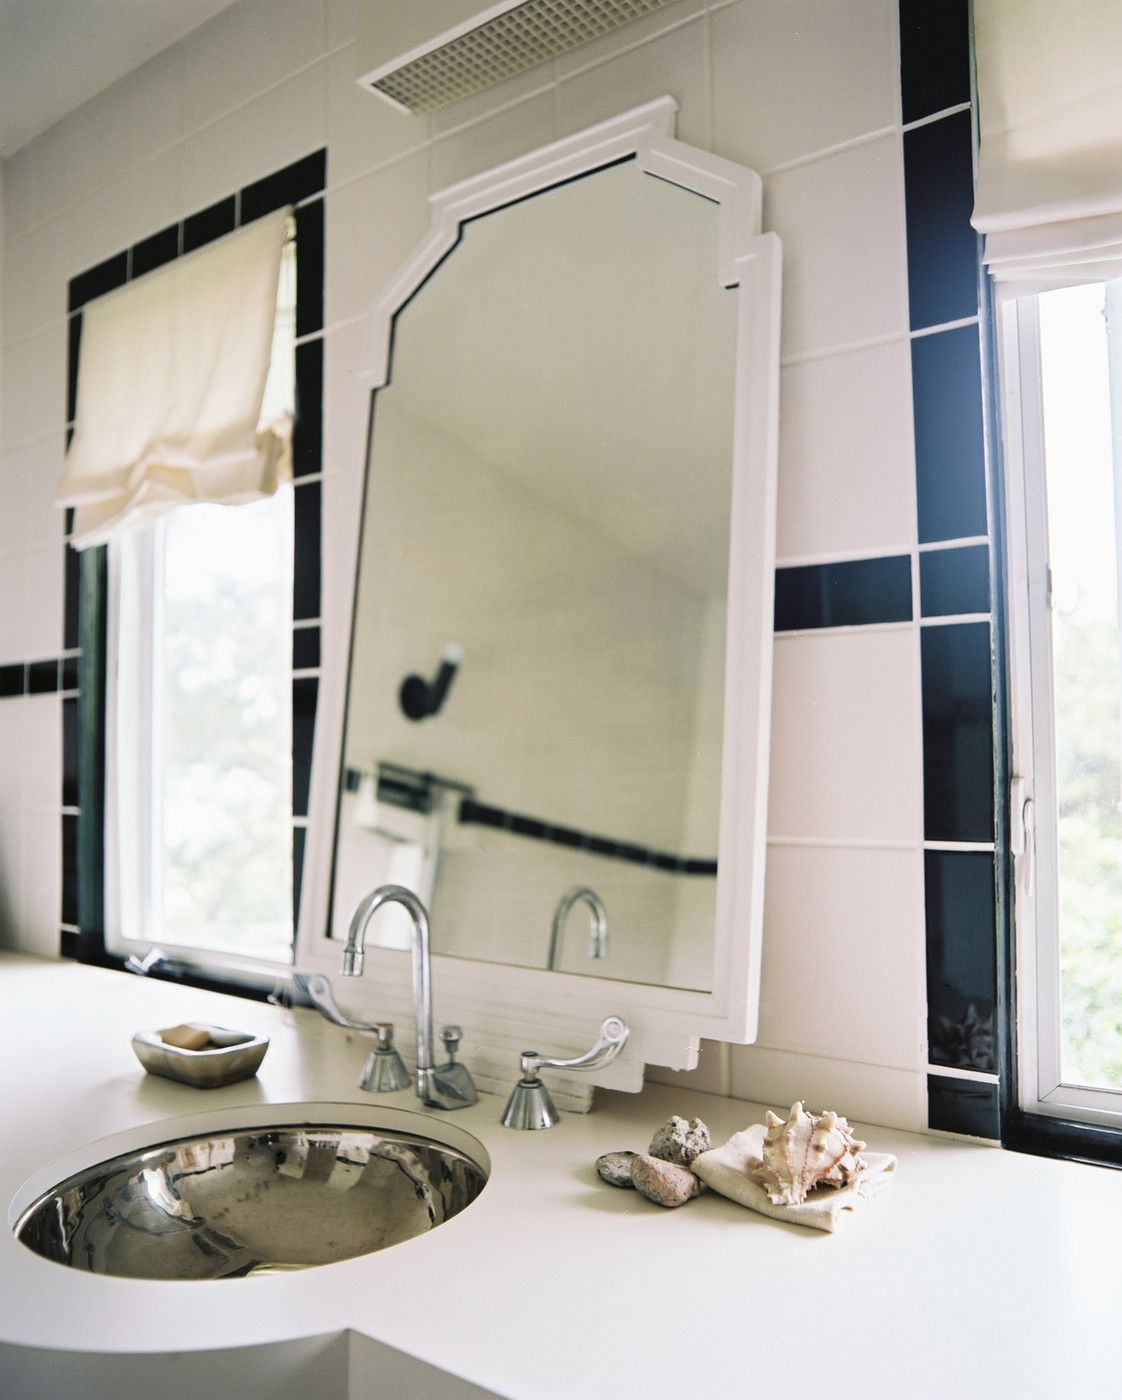 Shells and vintage mirror in the bathroom - Vicente Wolf at Home in Montauk, New York